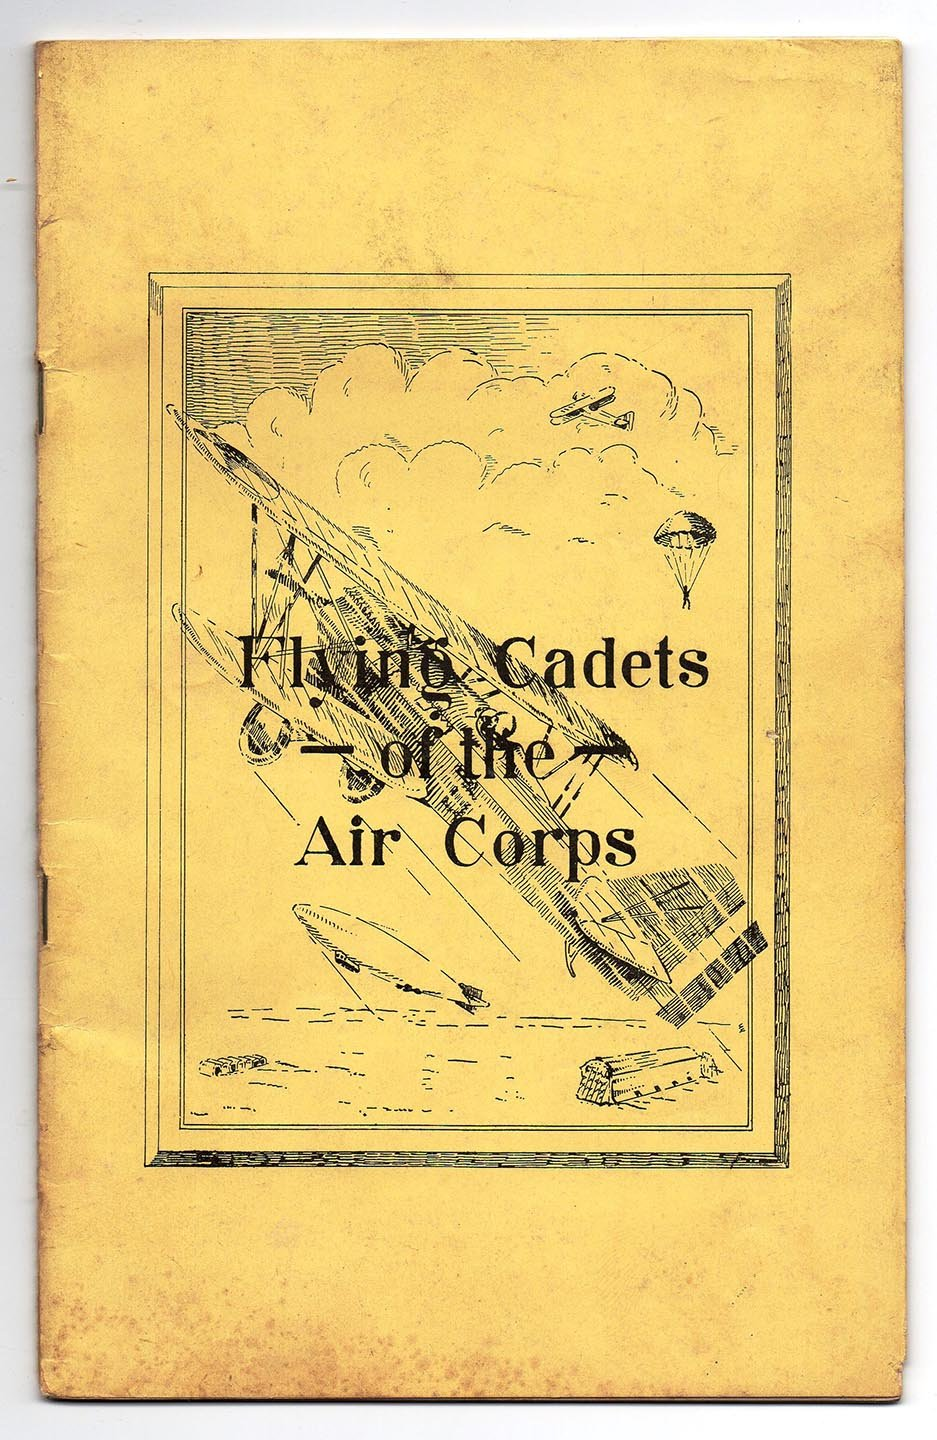 Flying Cadets of the Air Corps: Aviation as a Career